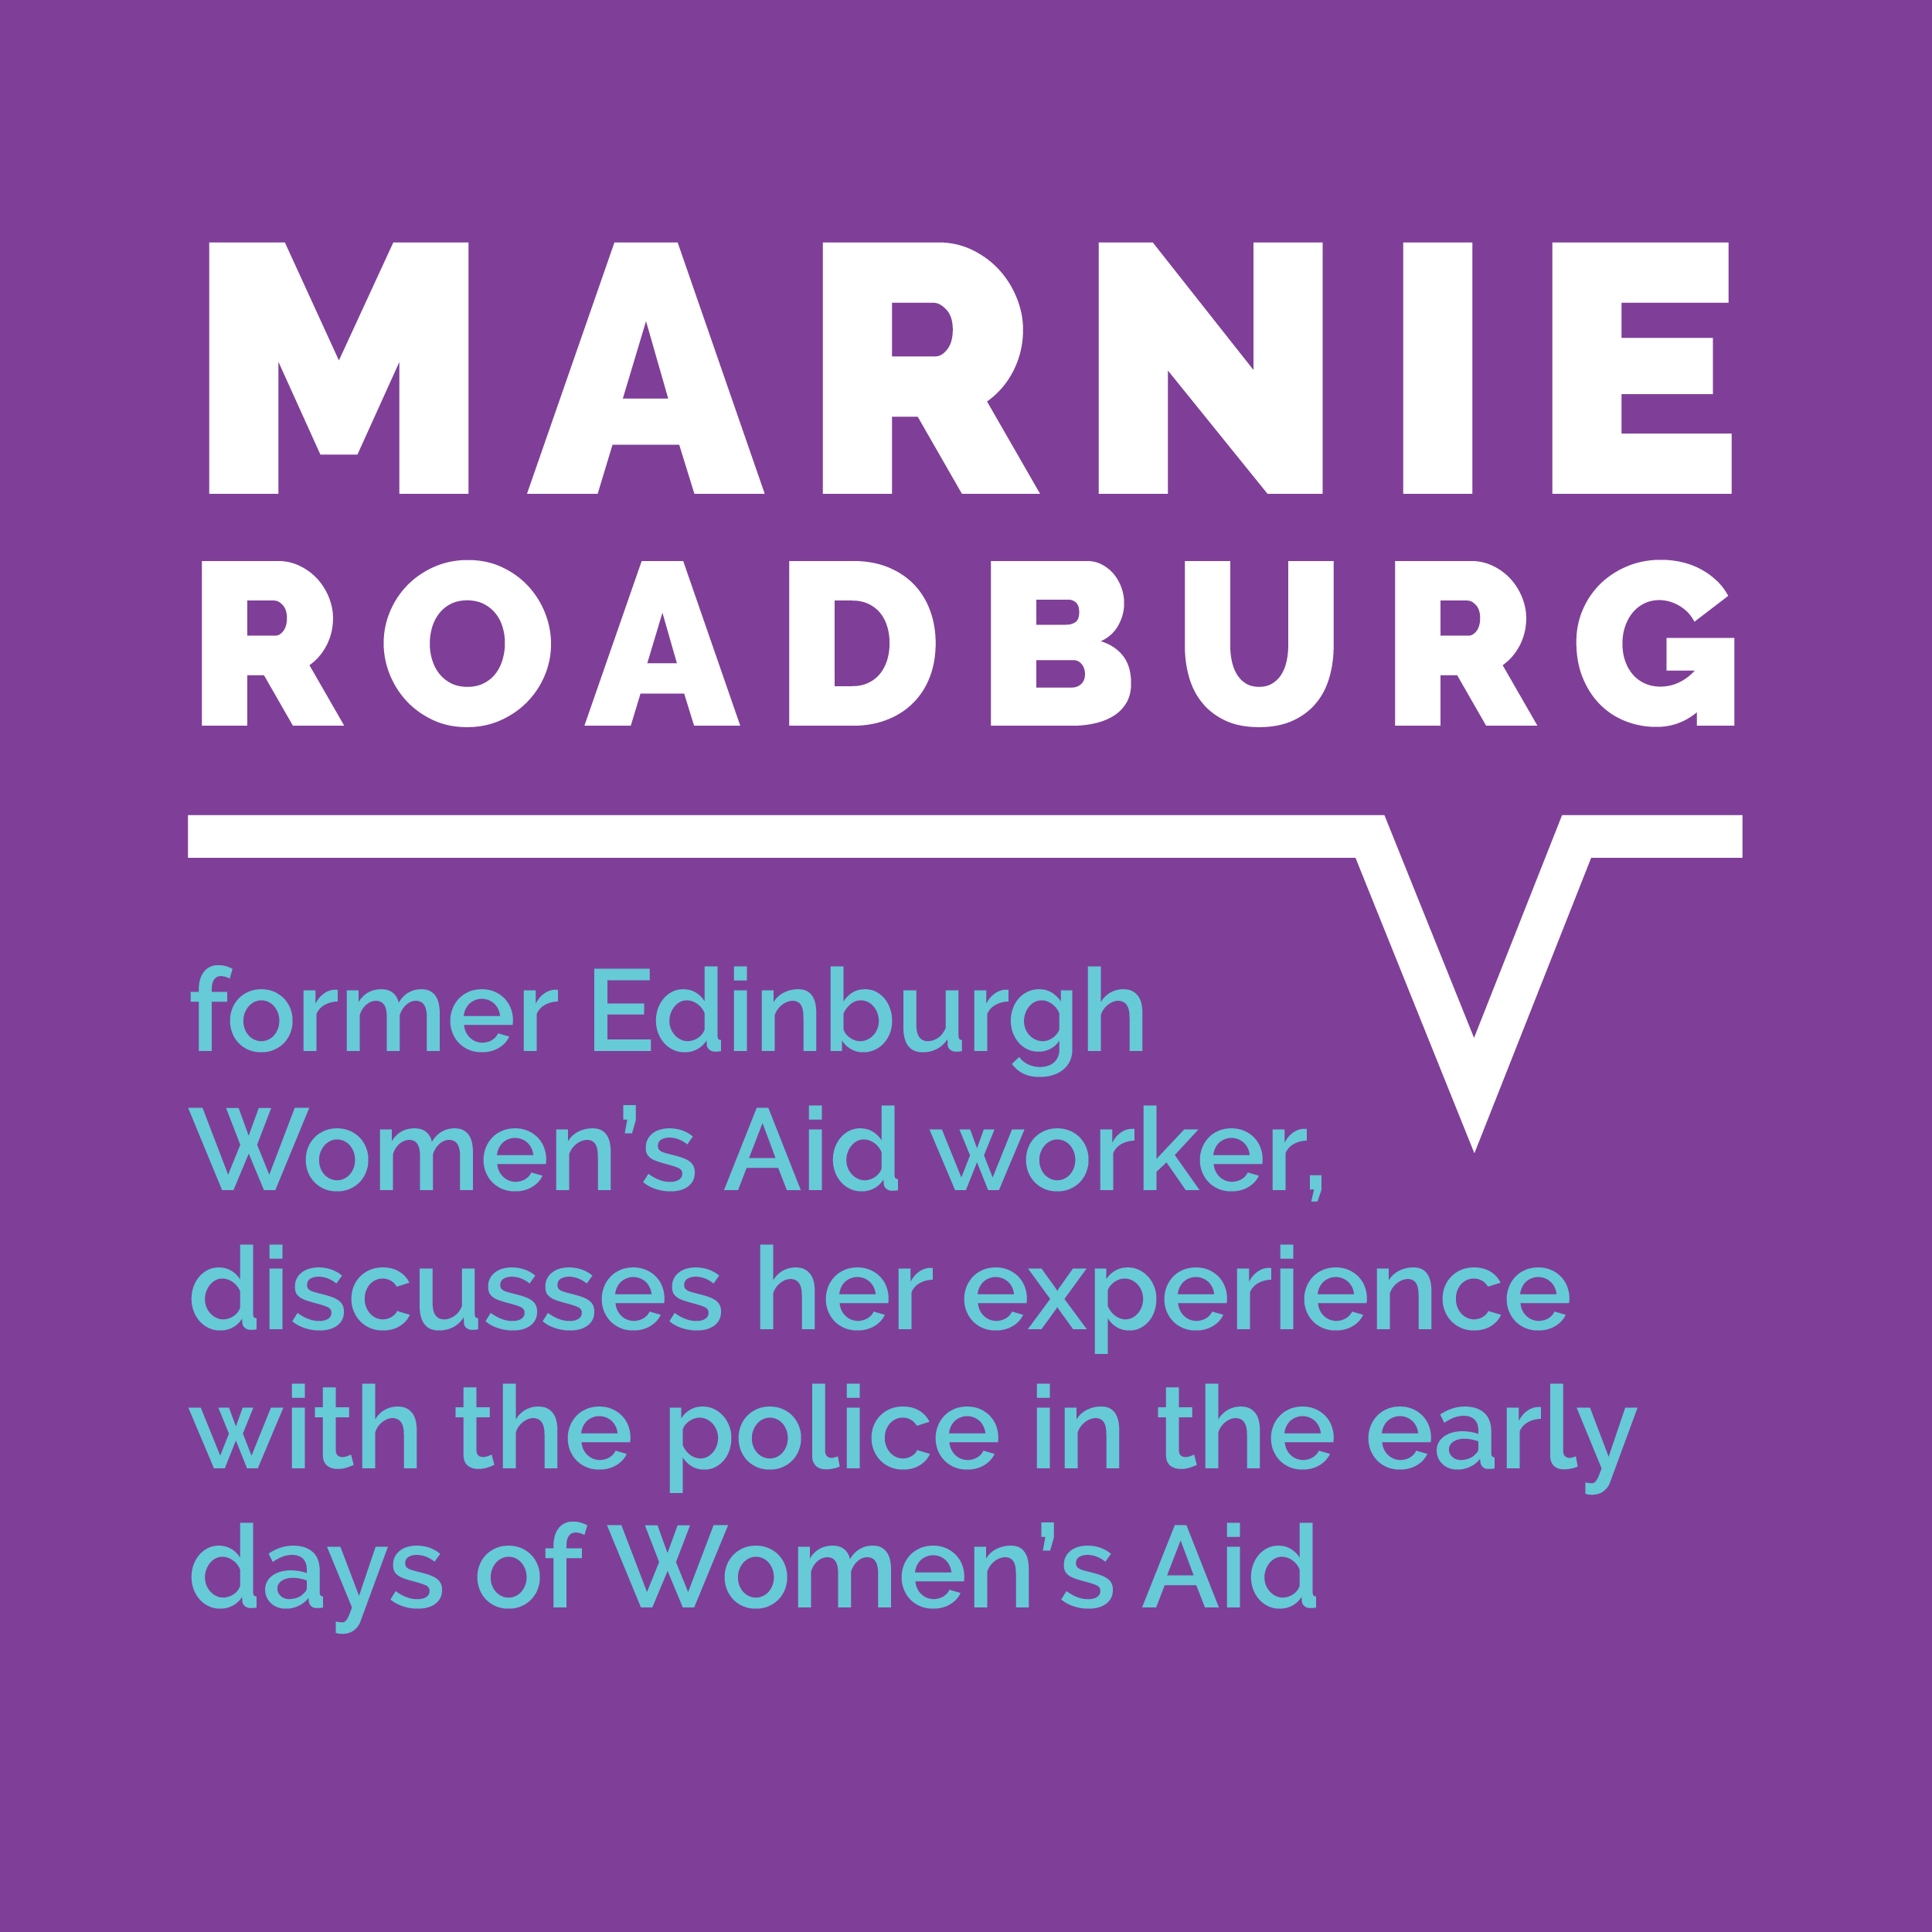 Marnie Roadburg, former Edinburgh Women's Aid worker, discusses her experience with the police in the early days of Women's Aid